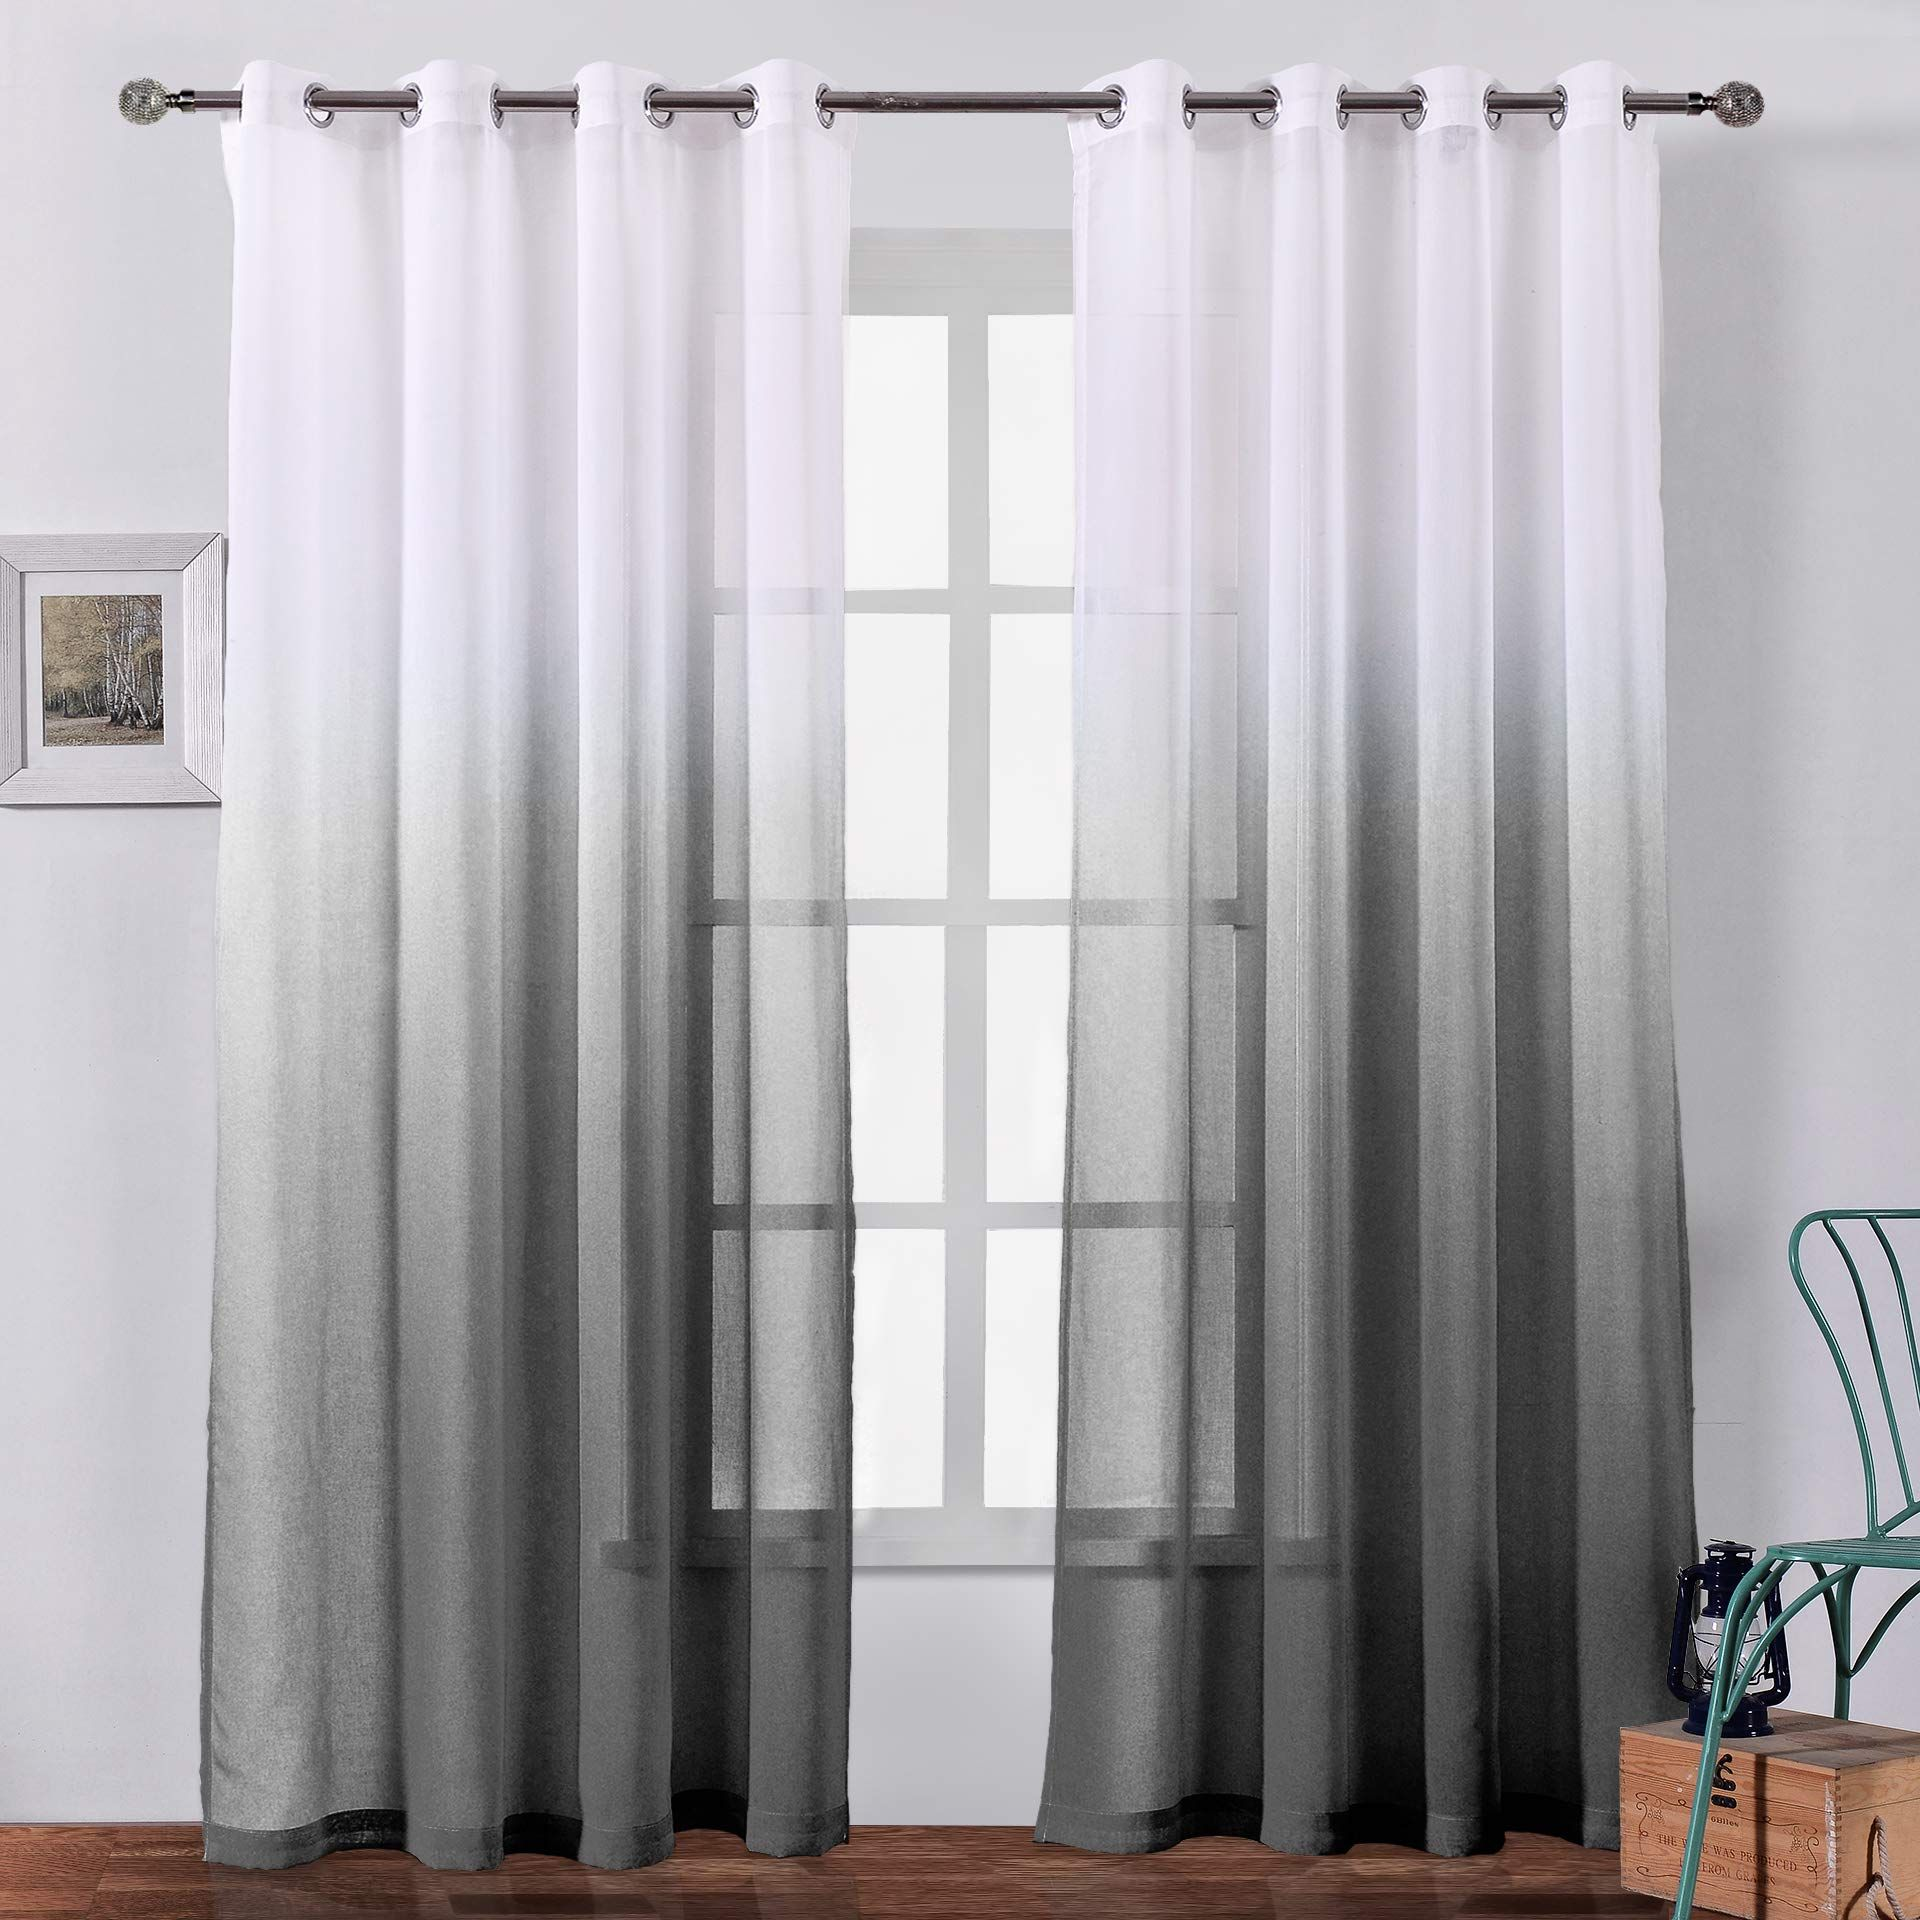 Bermino Faux Linen Ombre Sheer Curtains Voile Grommet Semi Sheer